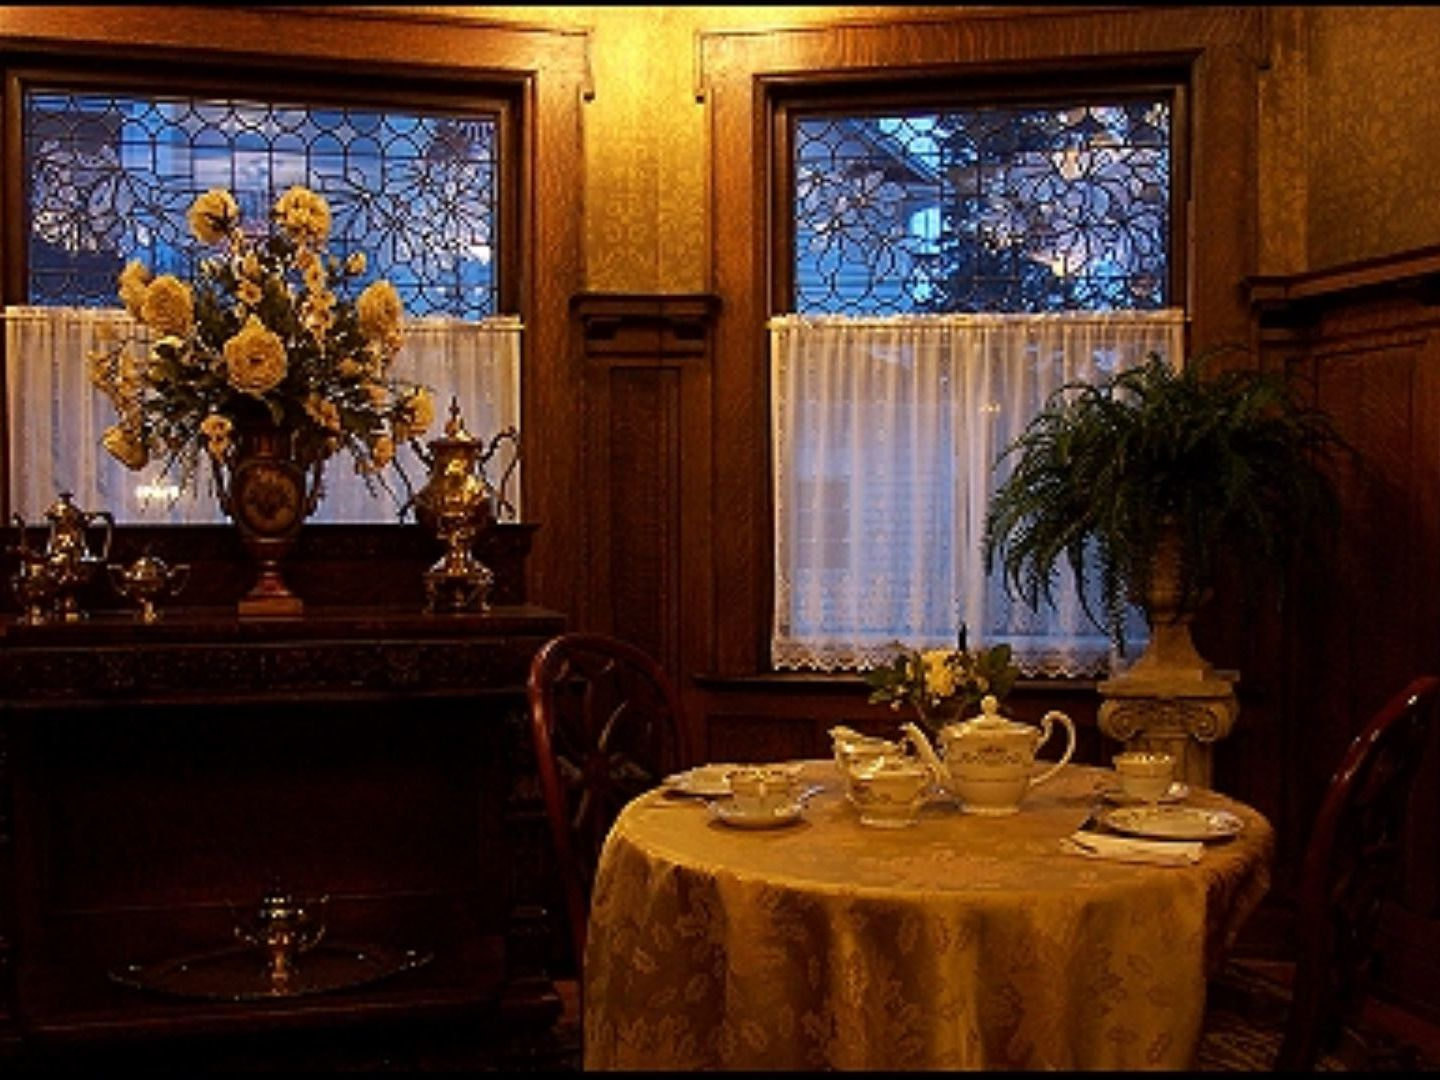 A vase of flowers on a table at Antiquities' Wellington Inn Bed & Breakfast.